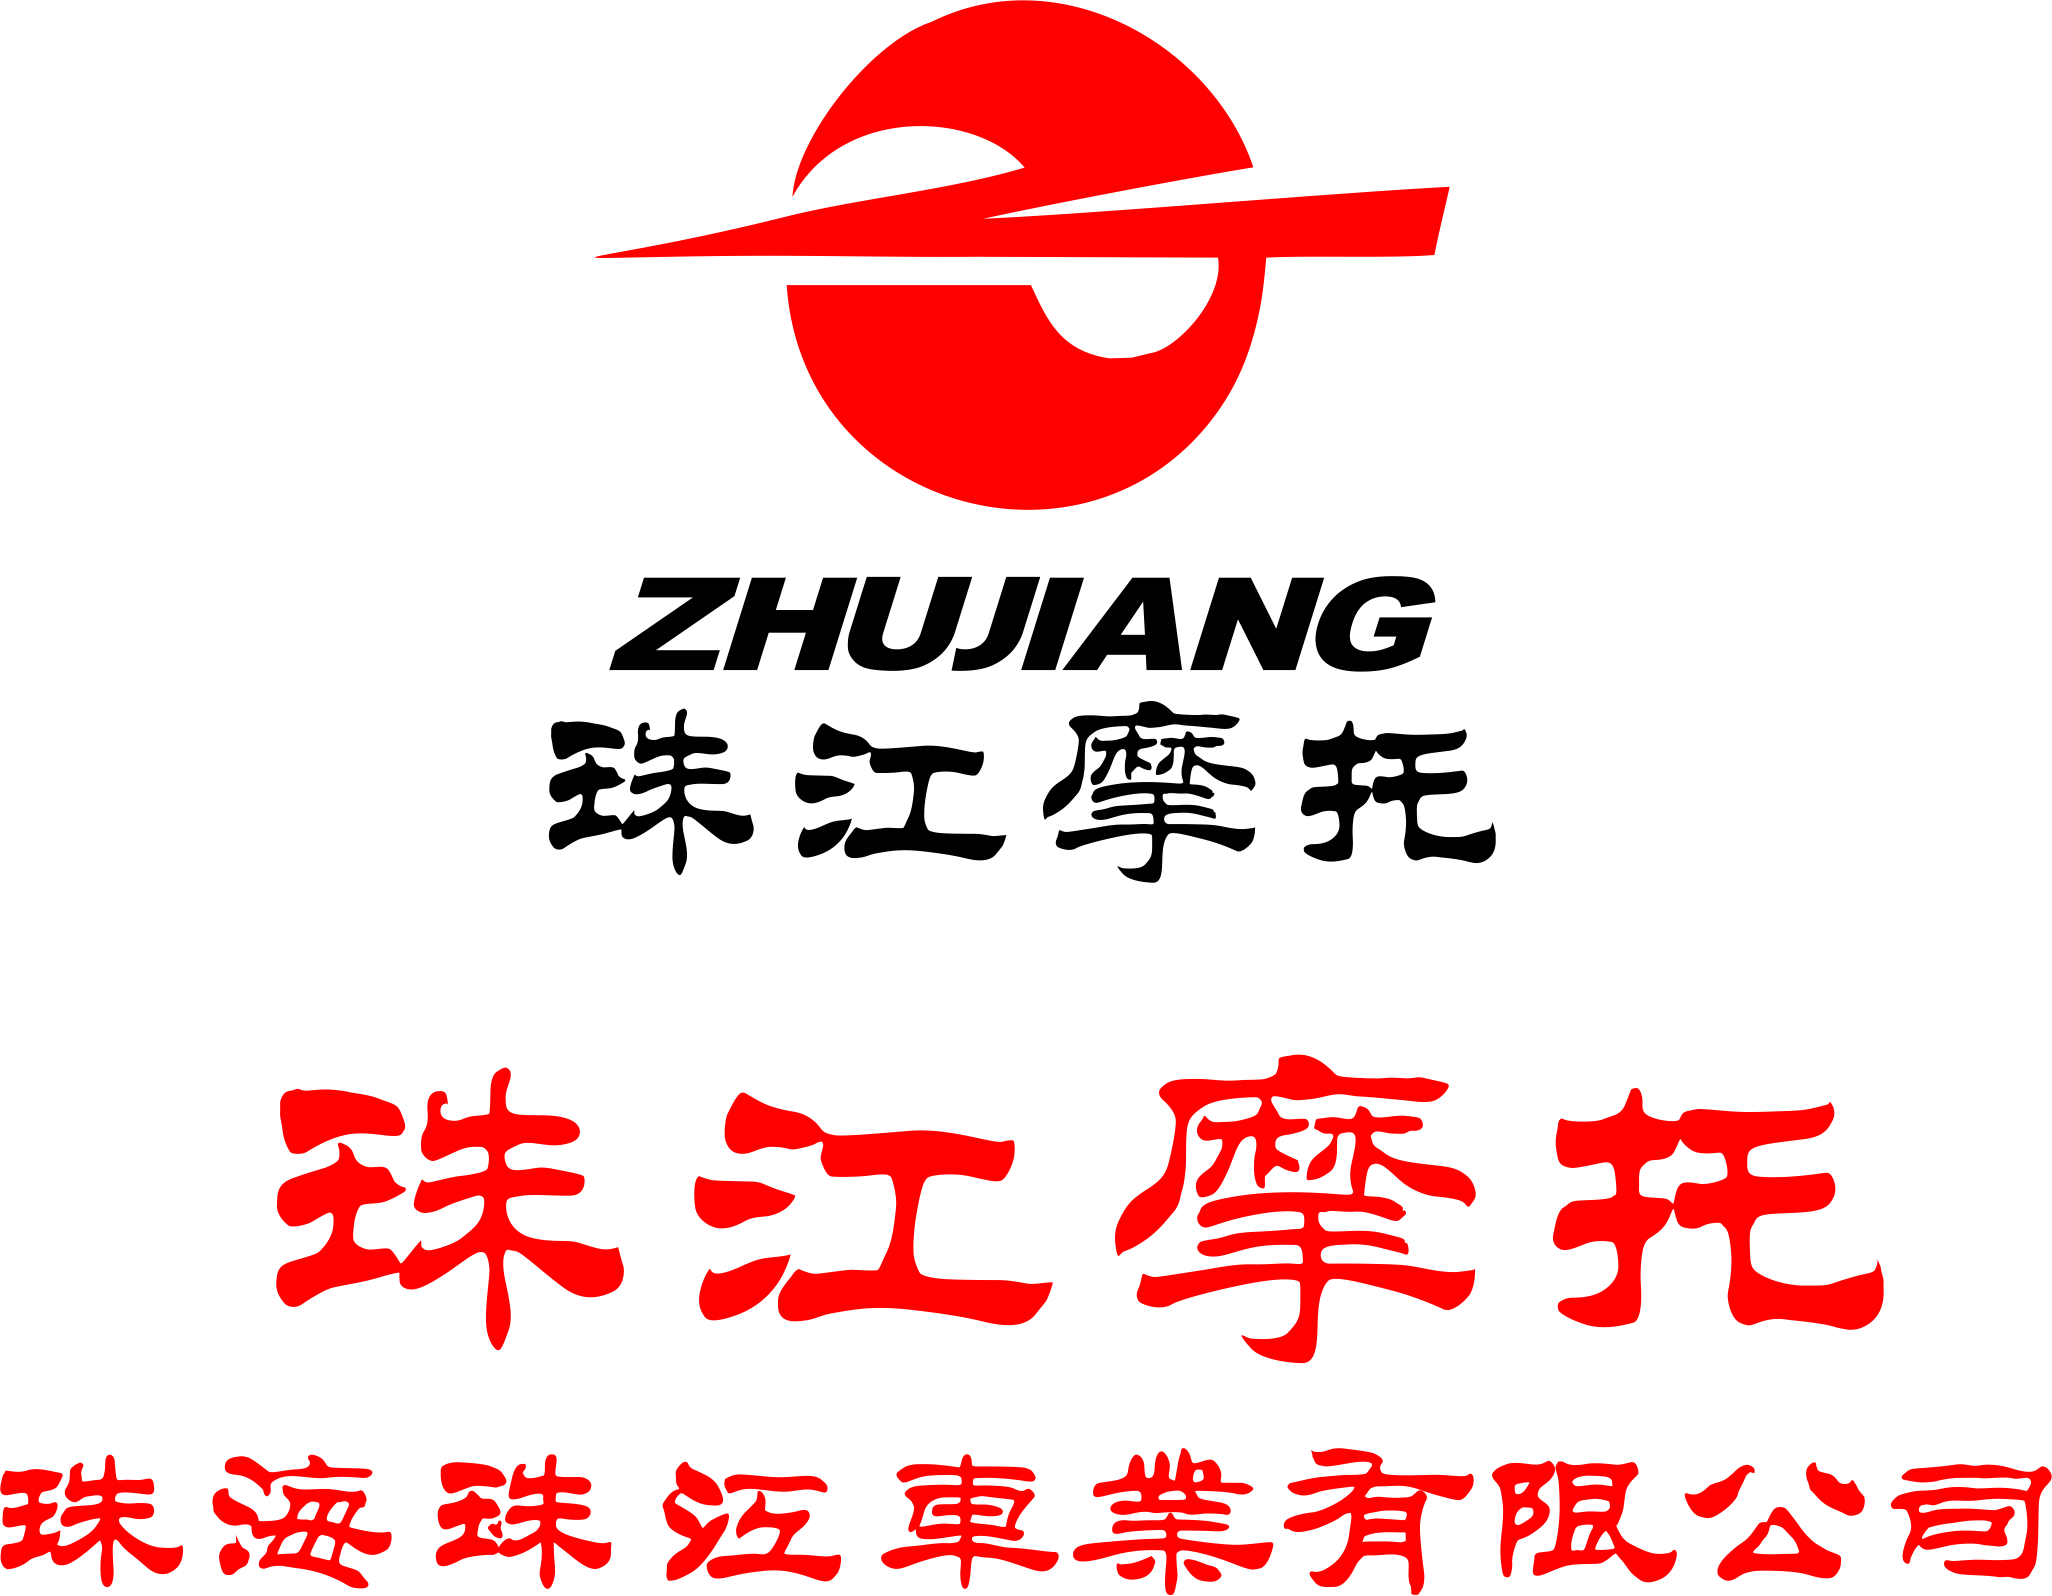 ZHUHAI ZHUJIANG VEHICLE CO., LTD